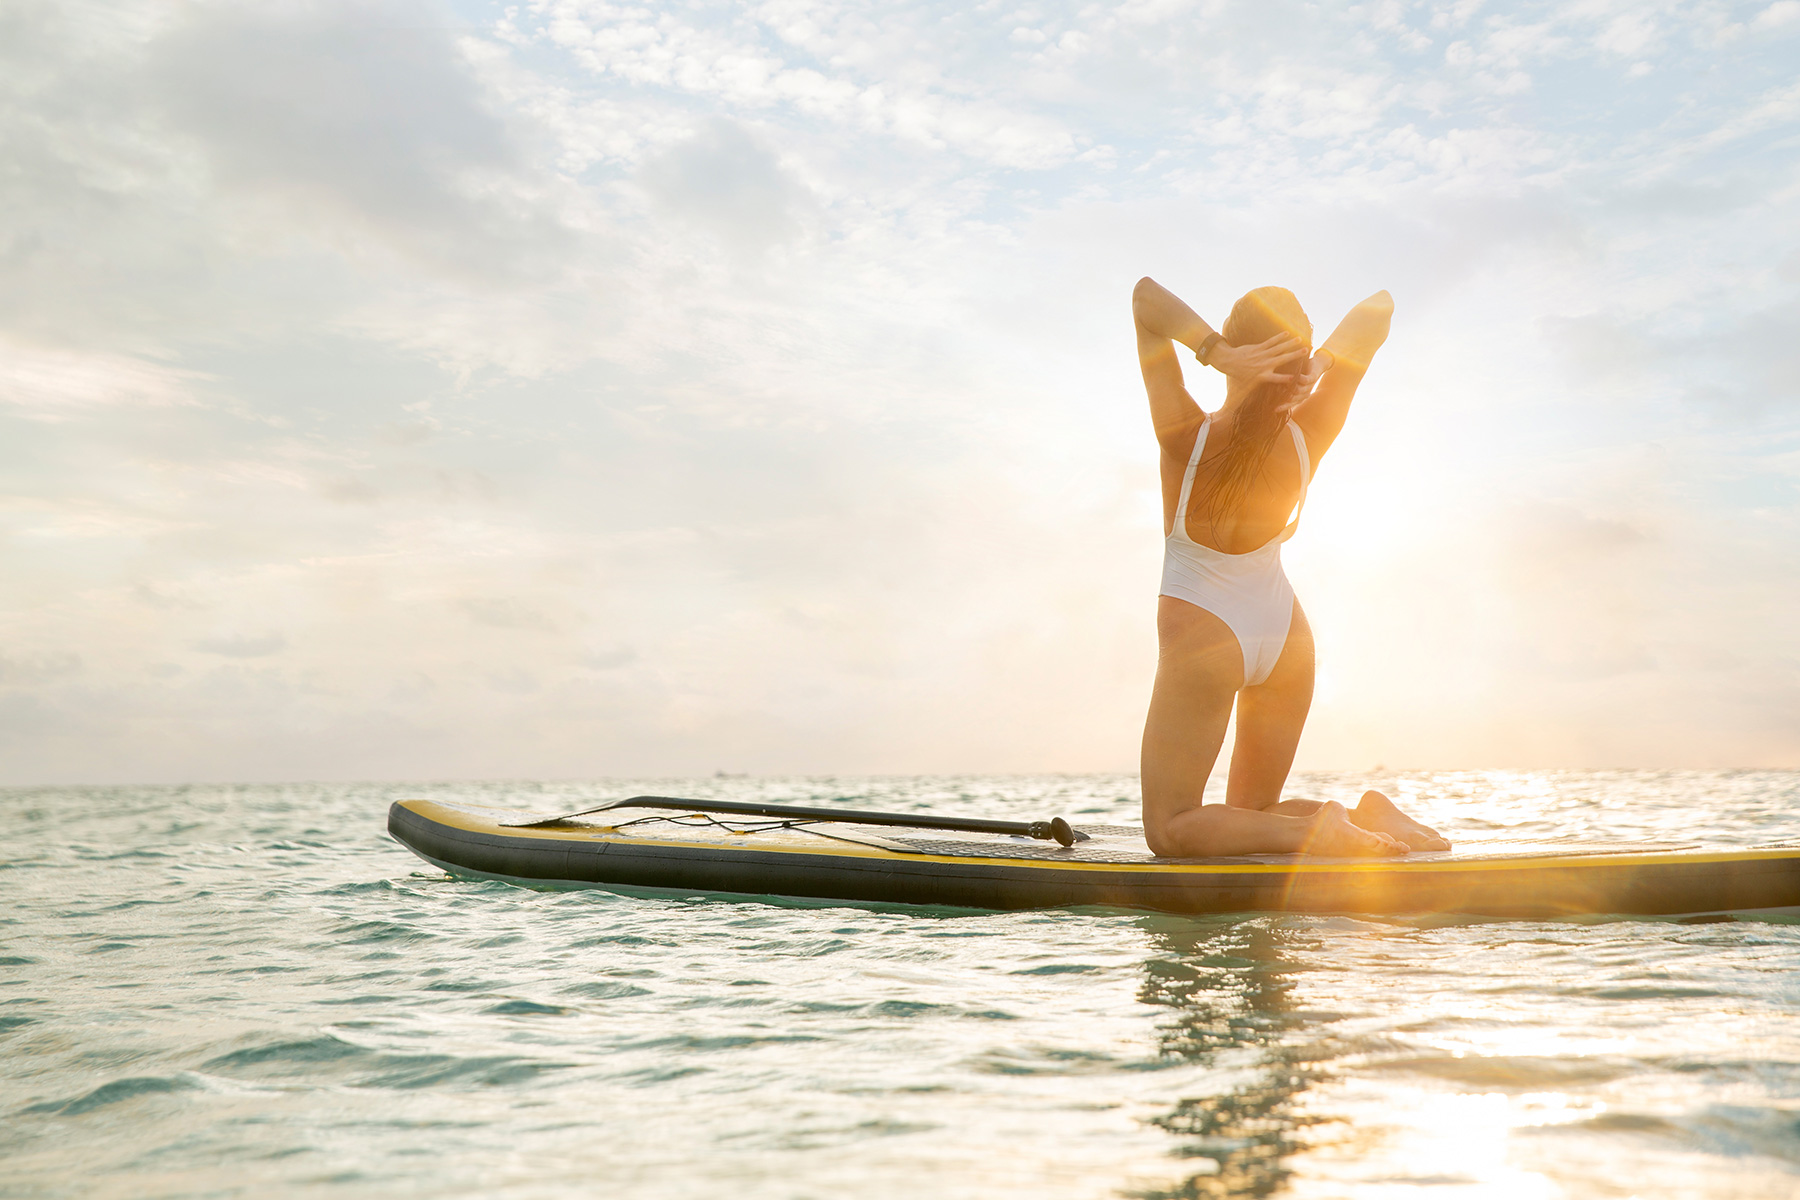 miami_lifestyle_beach_fitness_photography_david_gonzalez_girl_outdoor_workout-woman-on-a-paddle-board-enjoying-the-sunrise.jpg